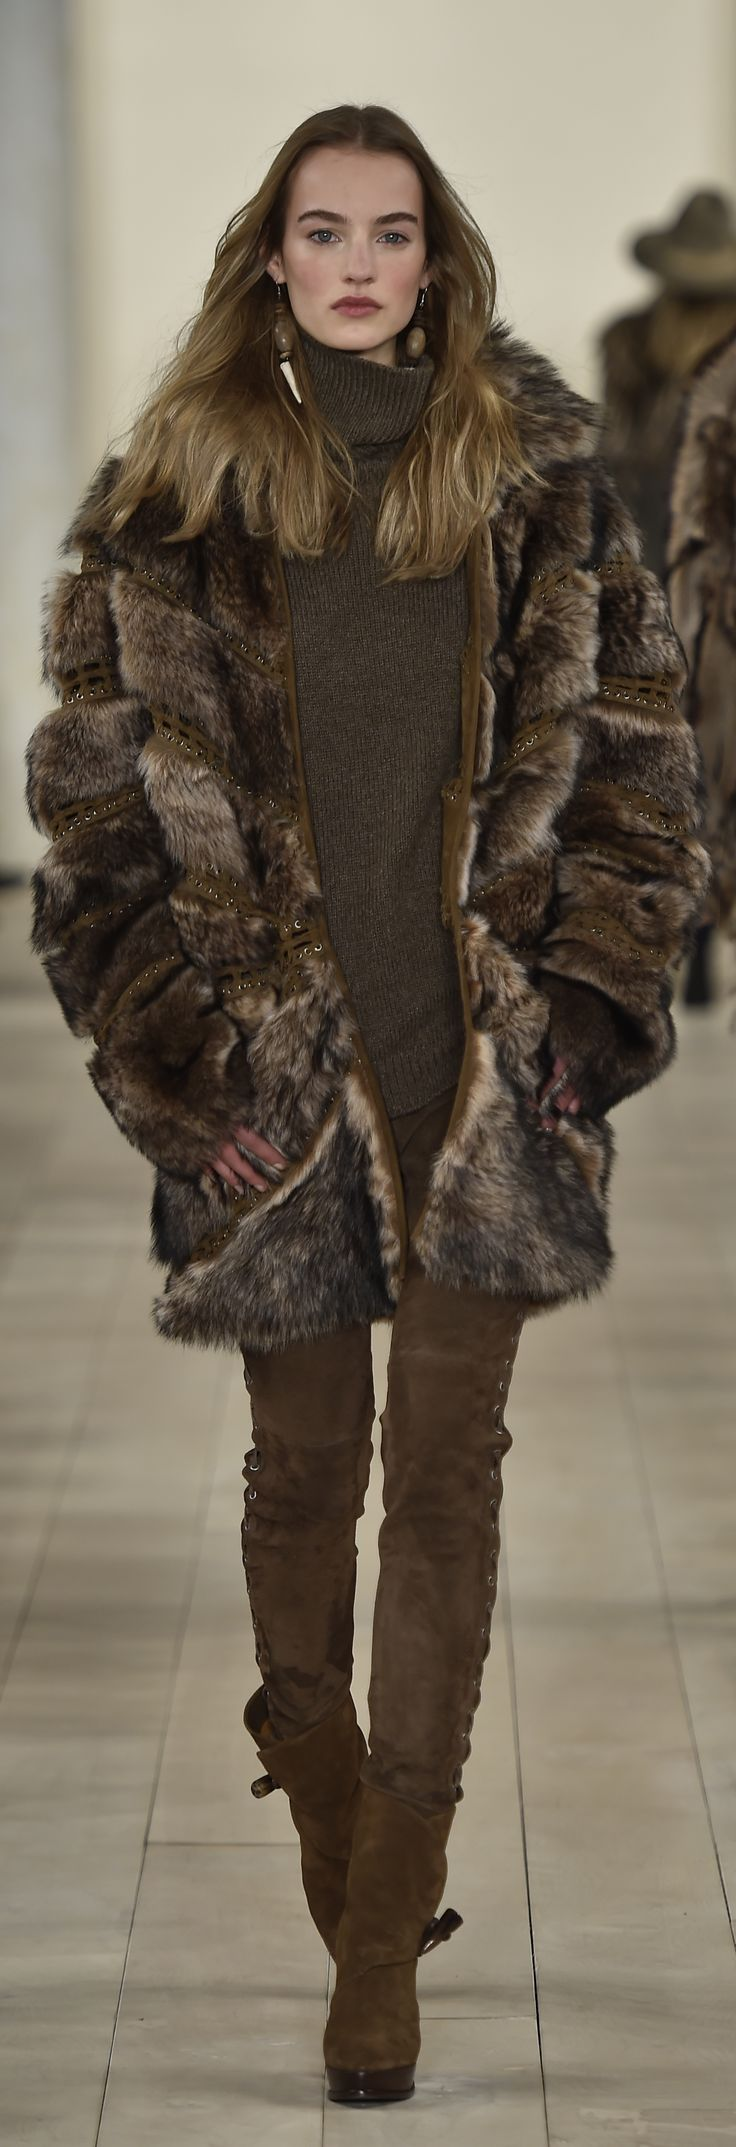 Ralph Lauren Collection Fall 2015: Shearling taupe coat available for pre-order on RalphLauren.com